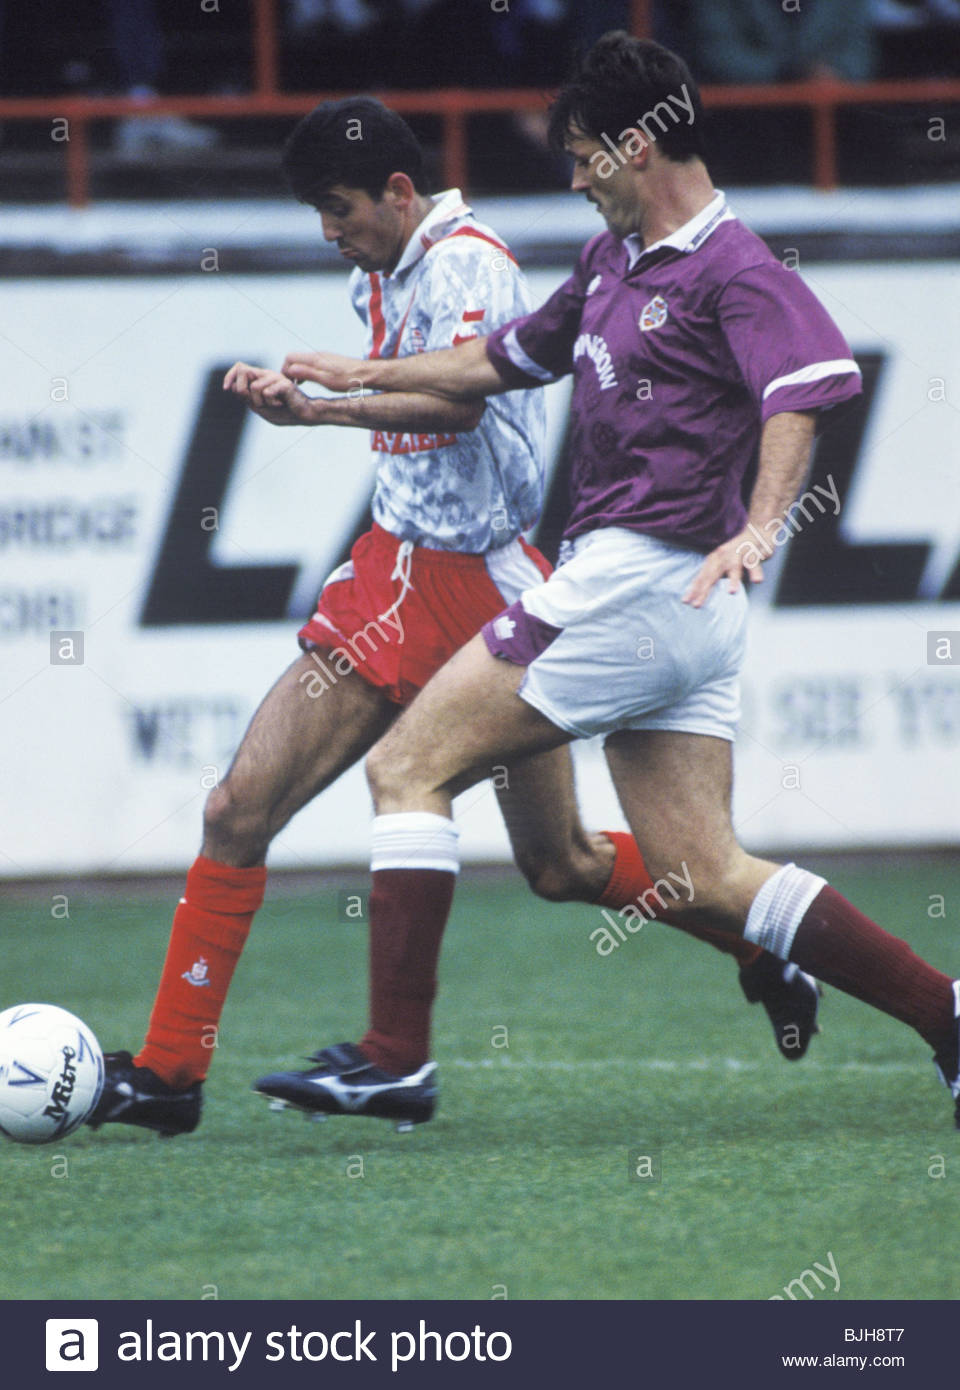 26/09/92 SCOTTISH PREMIER DIVISION AIRDRIE v HEARTS (1-0) BROOMFIELD - AIRDRIE Owen Coyle (left) tries to break - Stock Image